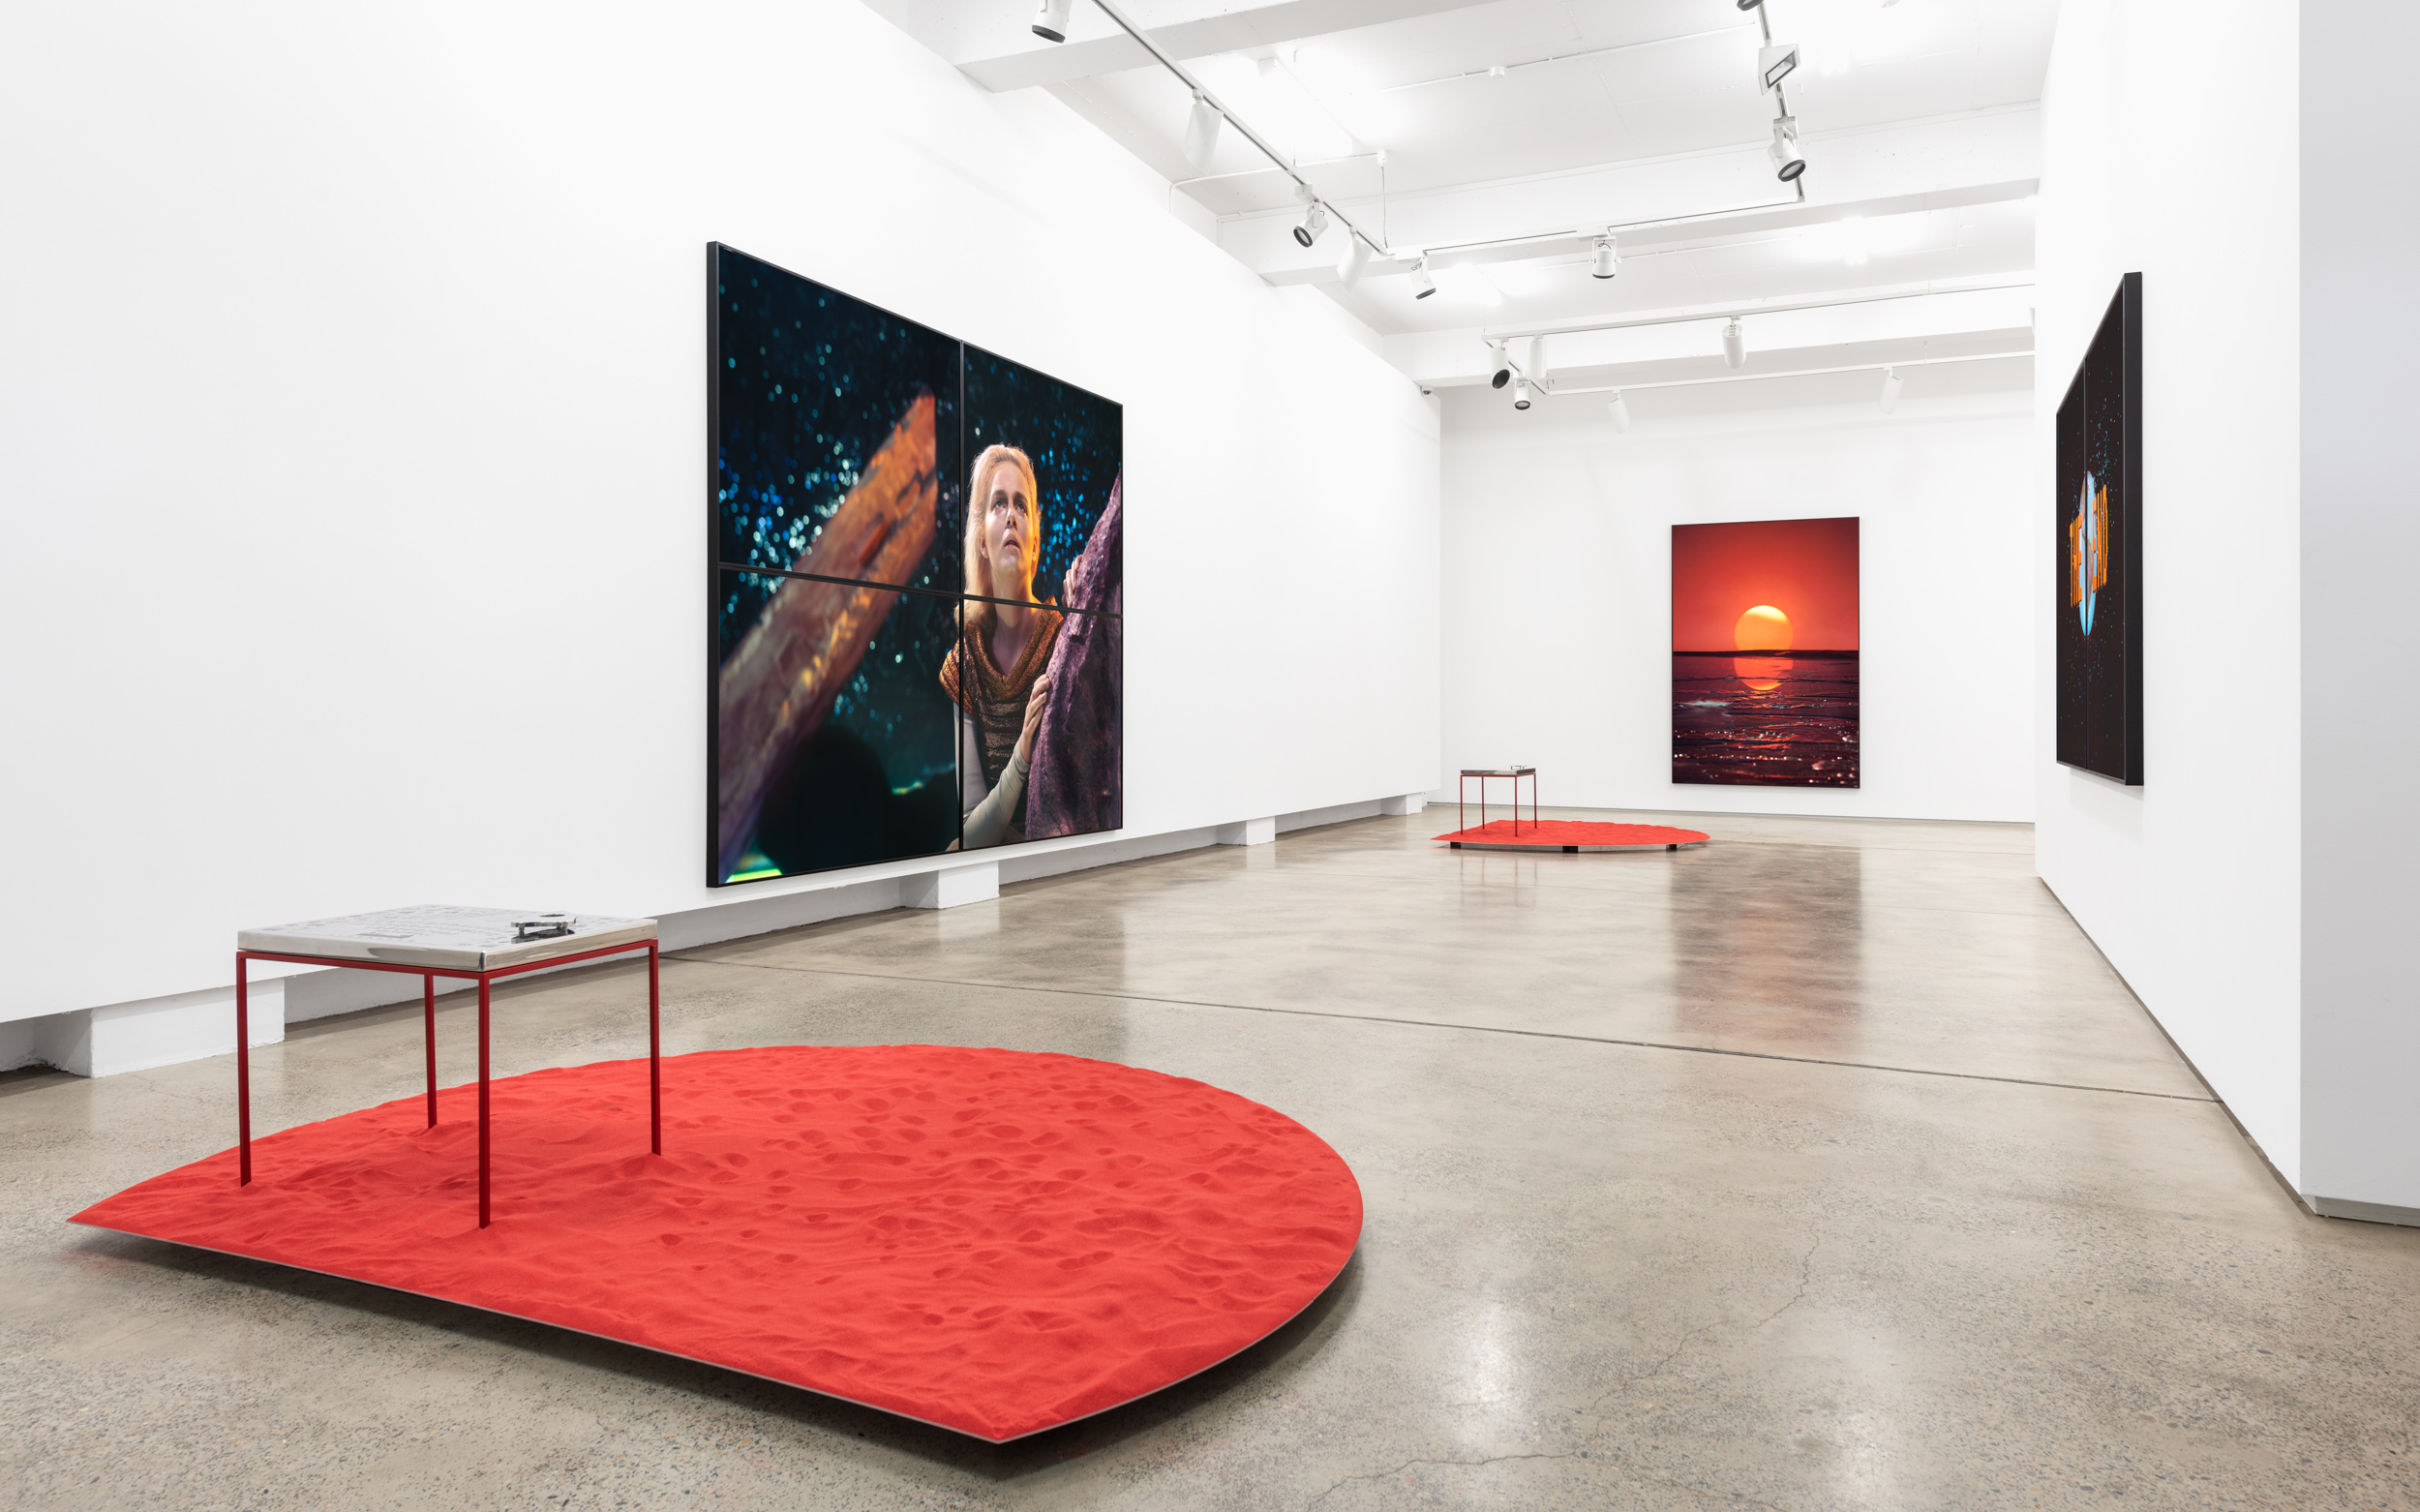 Installation view, Darren Sylvester, Out of Life, 29 Jun–4 Aug 2018, S+S Sydney.